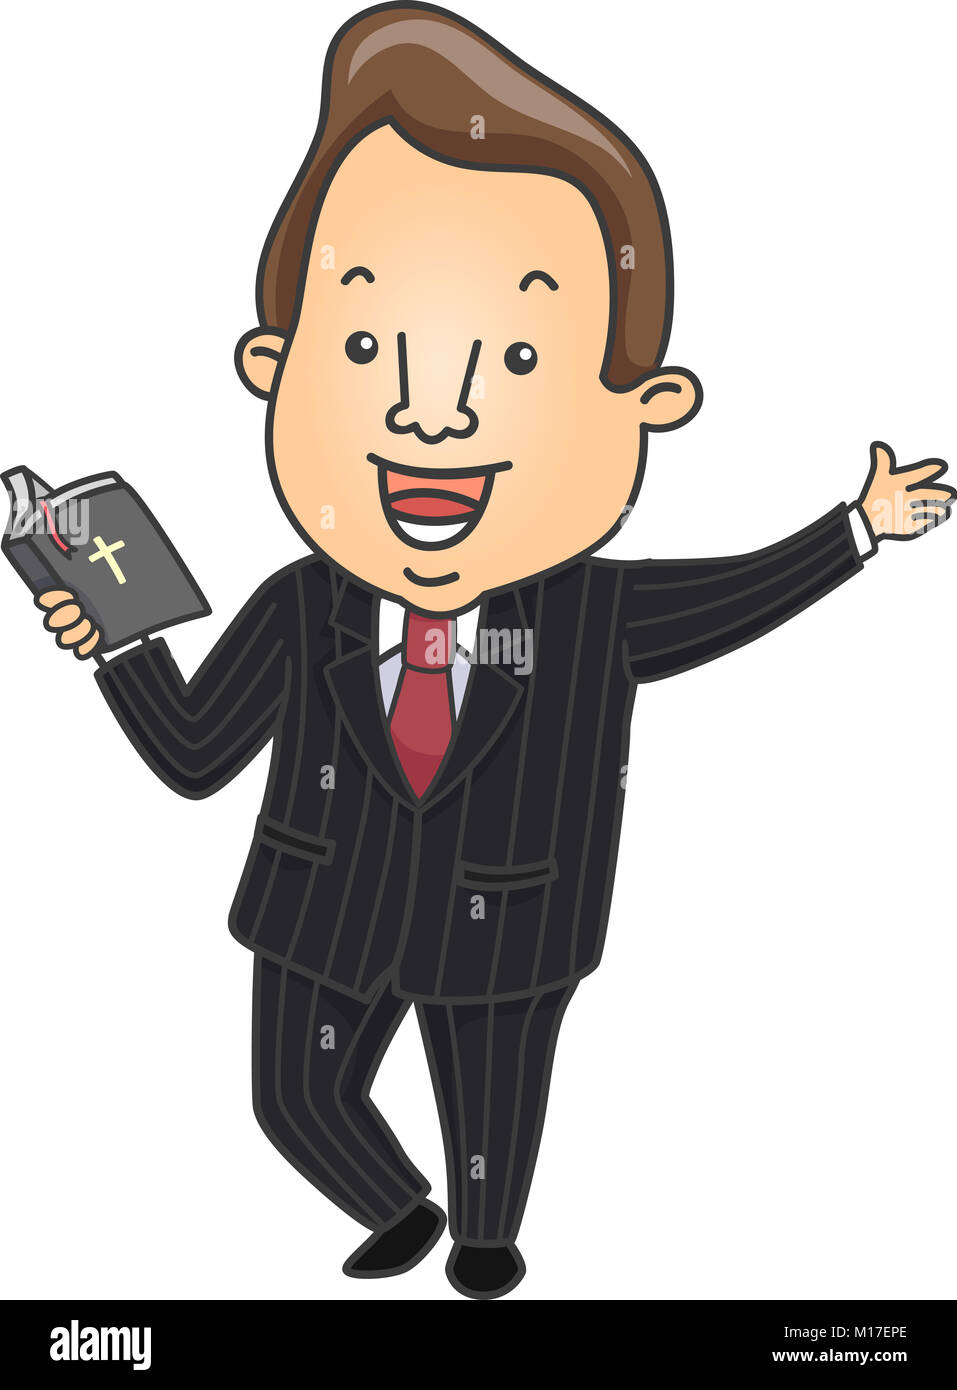 hight resolution of illustration of a preacher holding a bible happily preaching